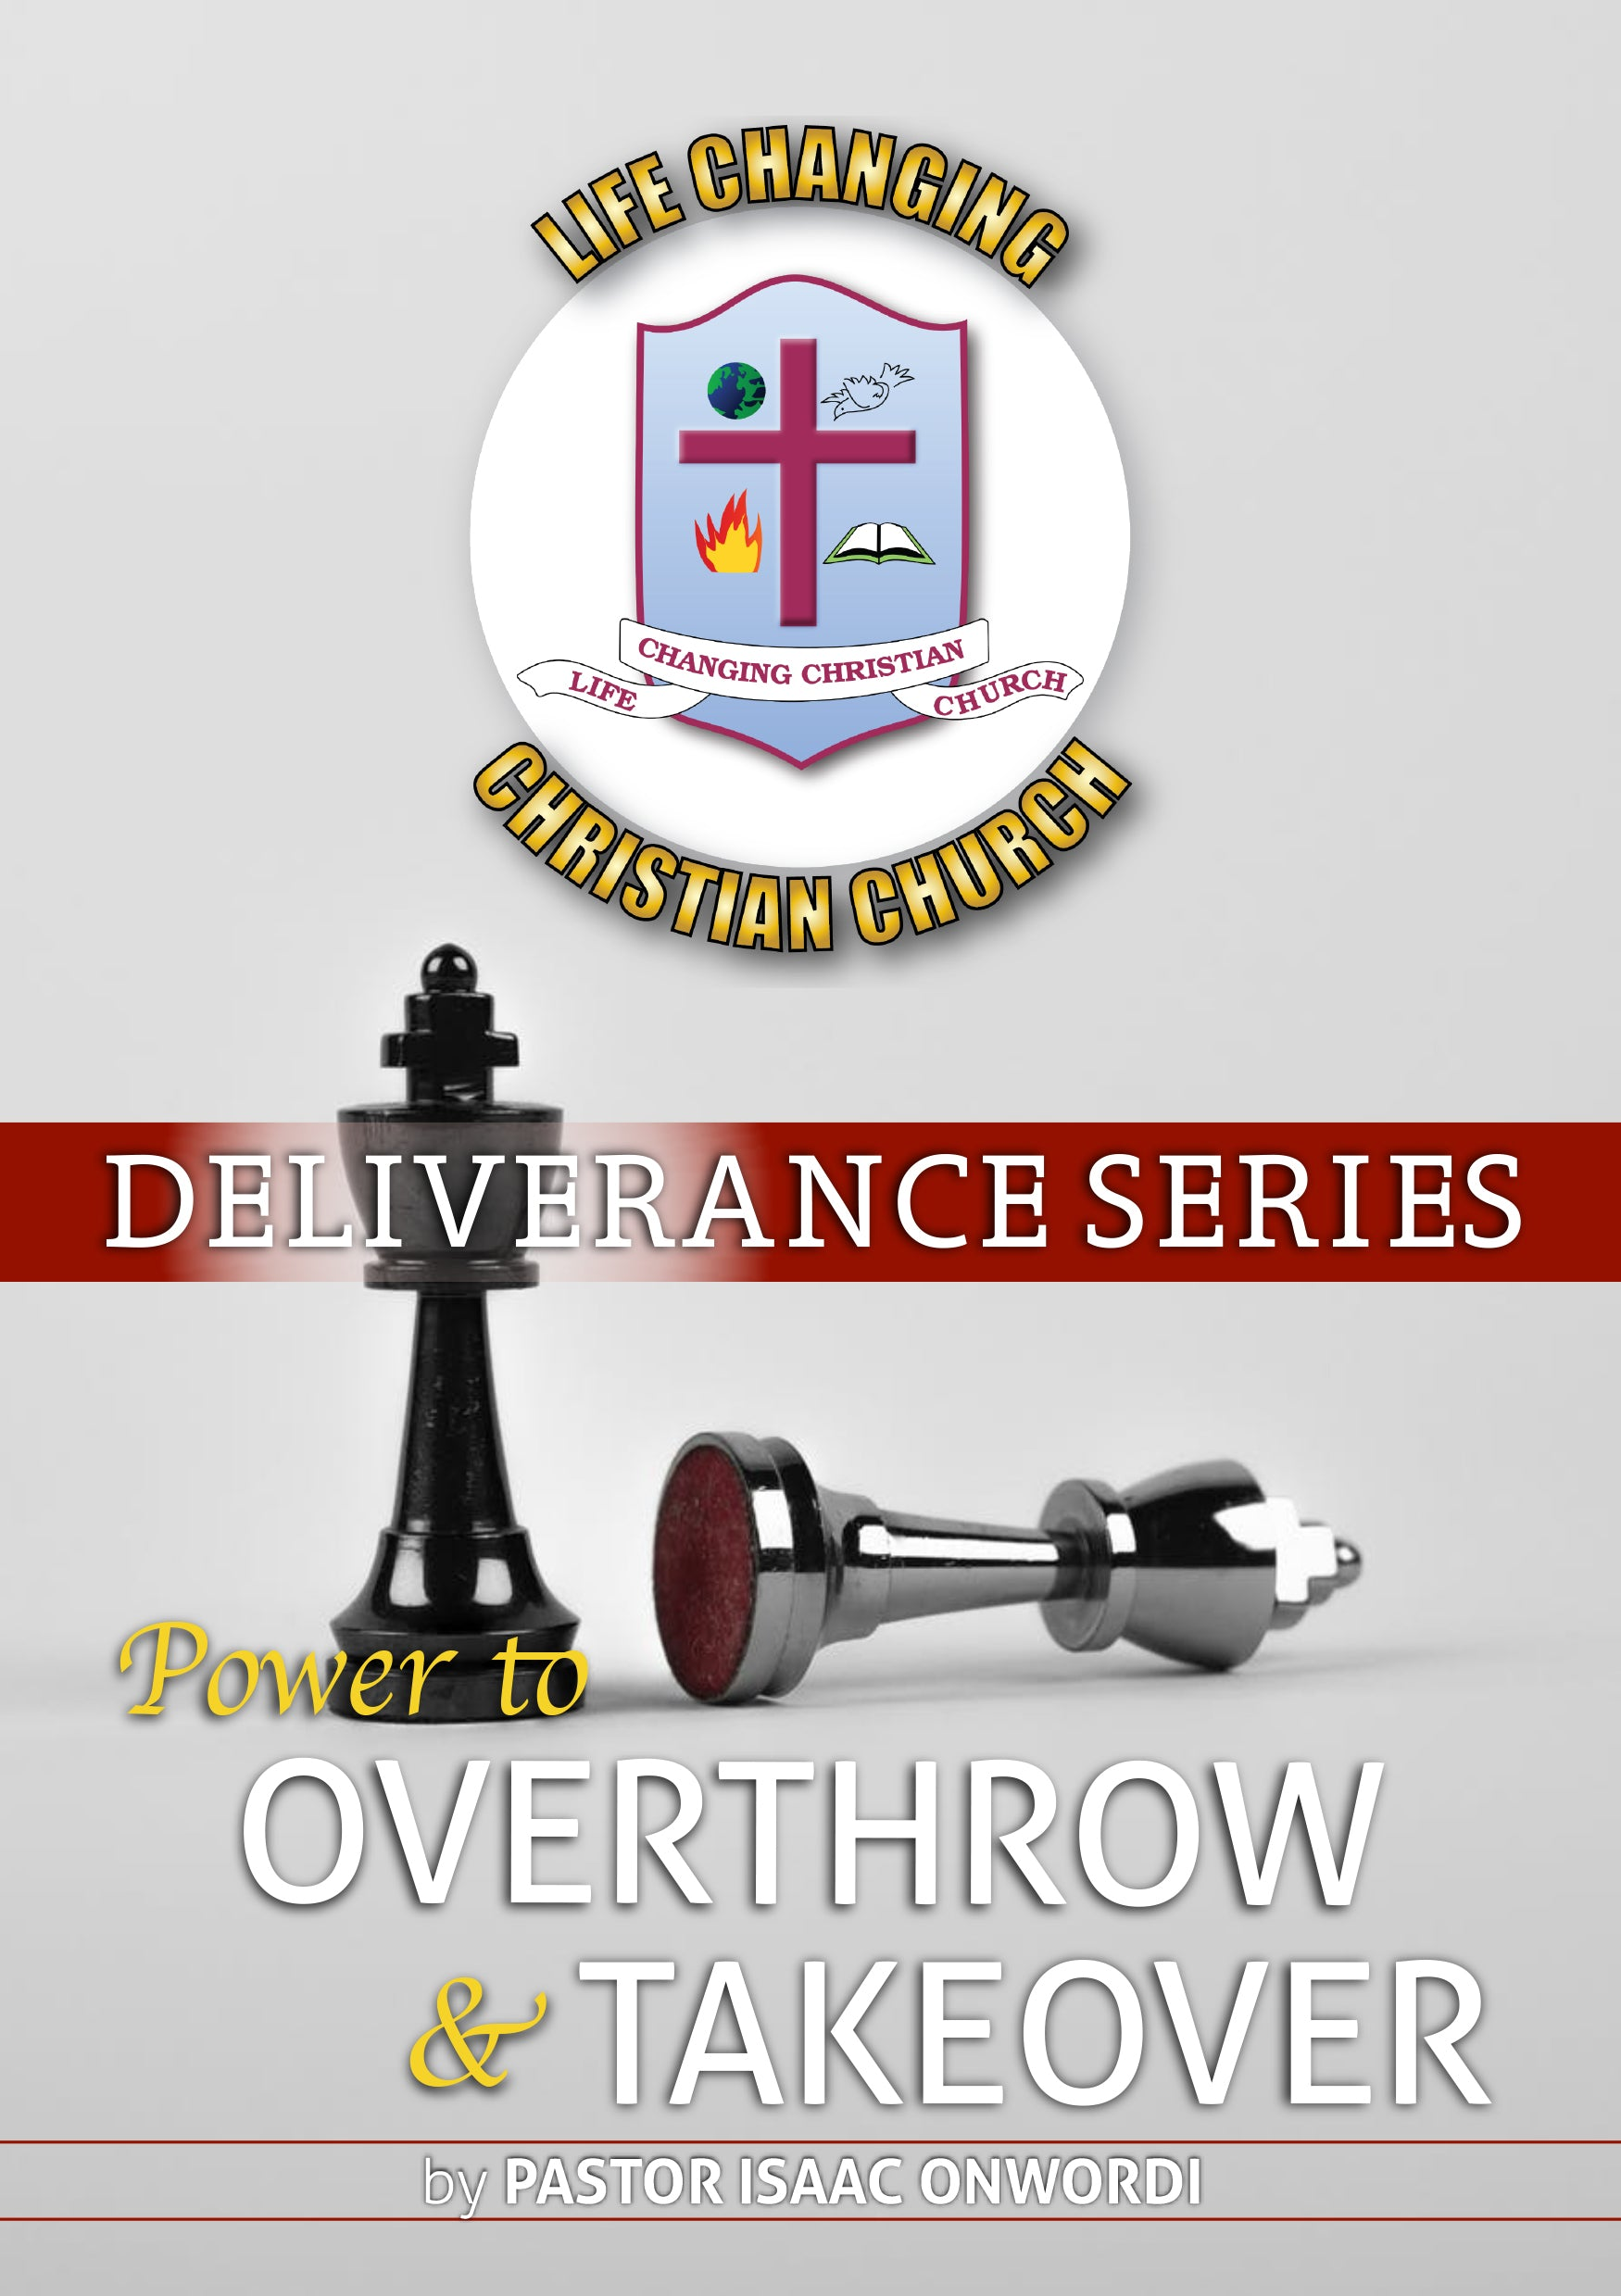 Deliverance Series: Power to Overthrow & Takeover